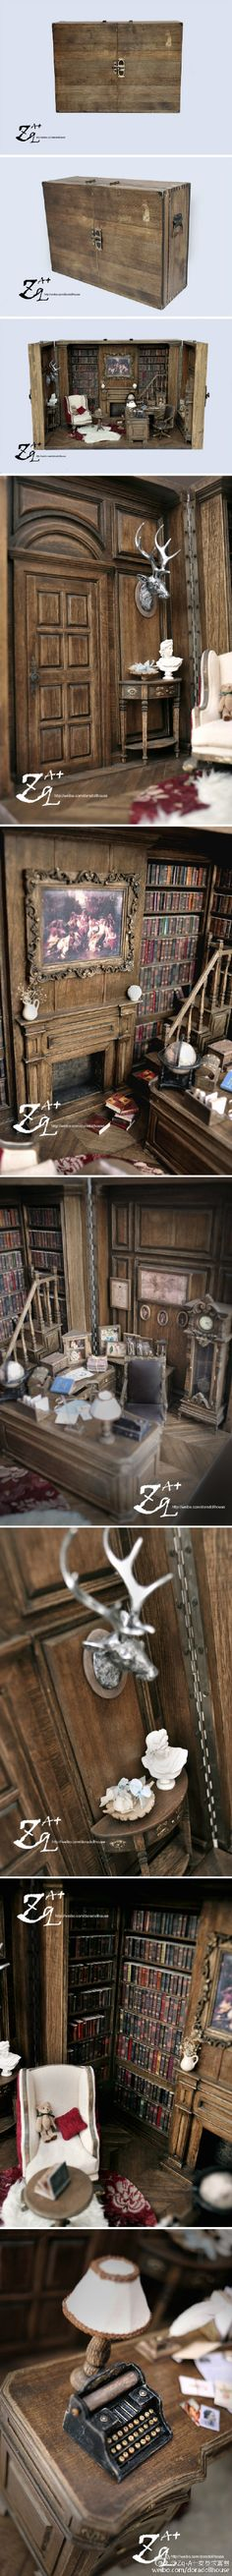 Wonderful antique library box - there are about 600 books on those shelves.  Now that's a labour of love.